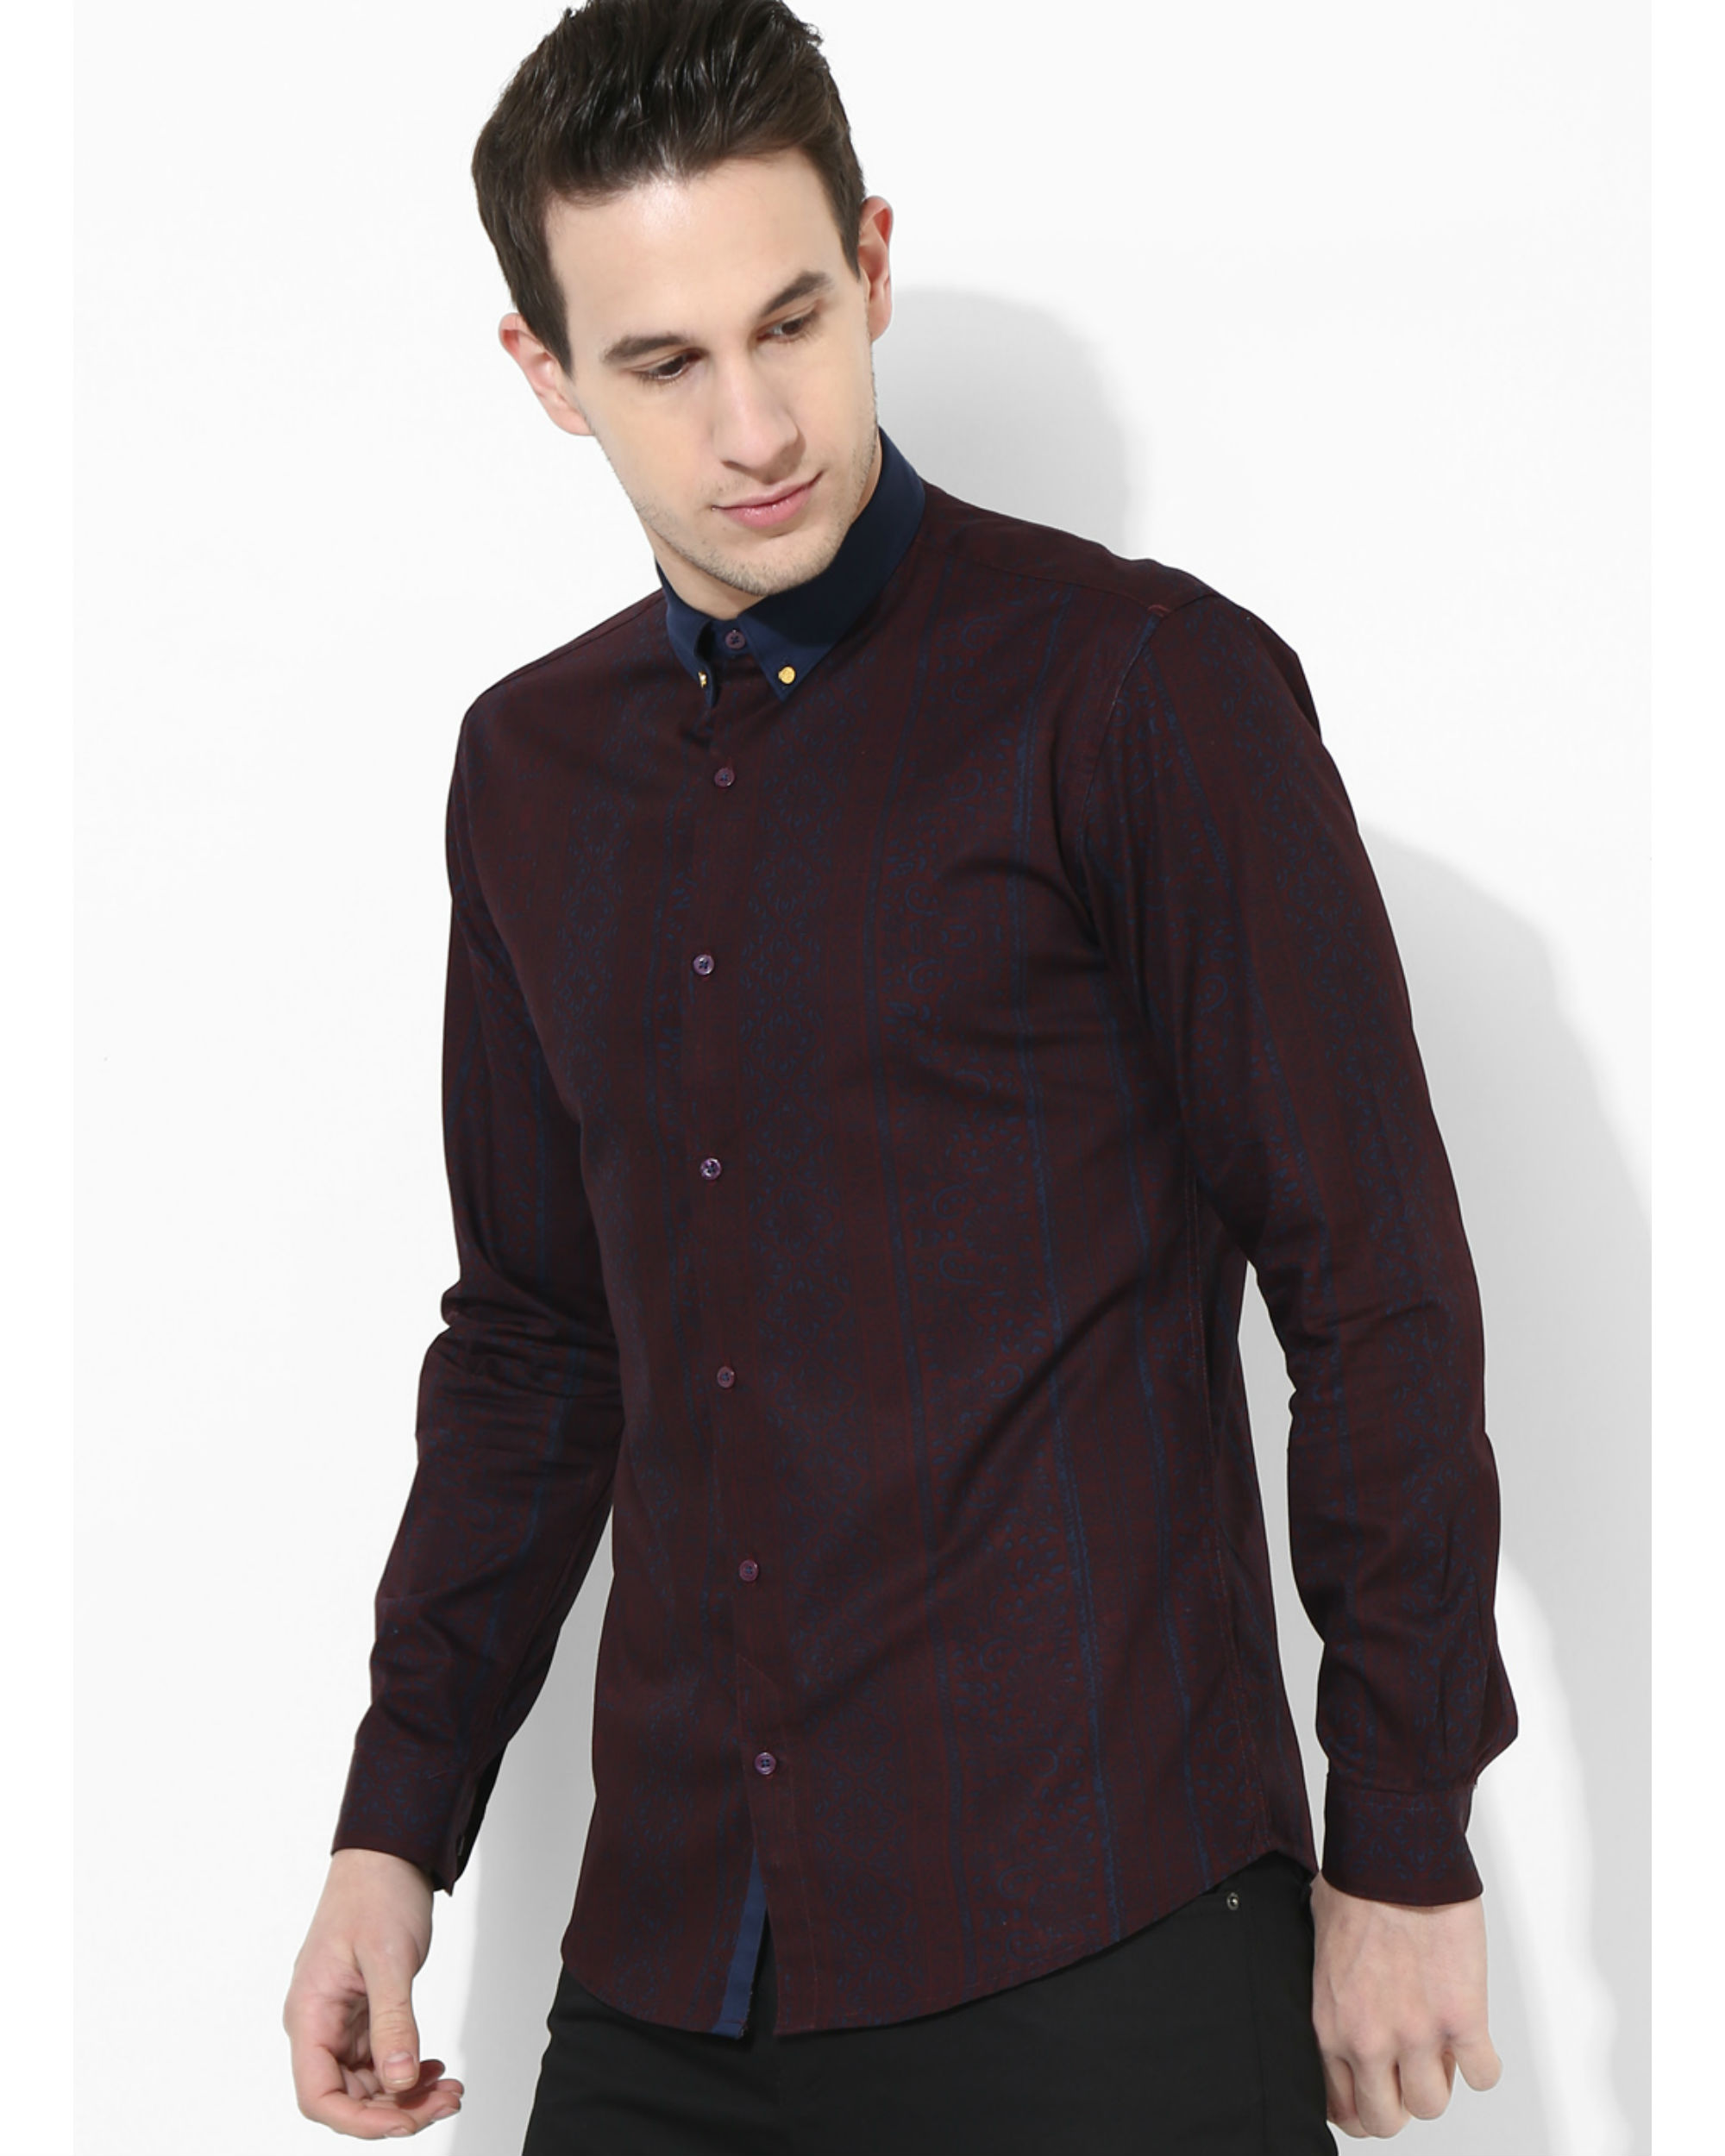 Printed Maroon Golden Button Shirt